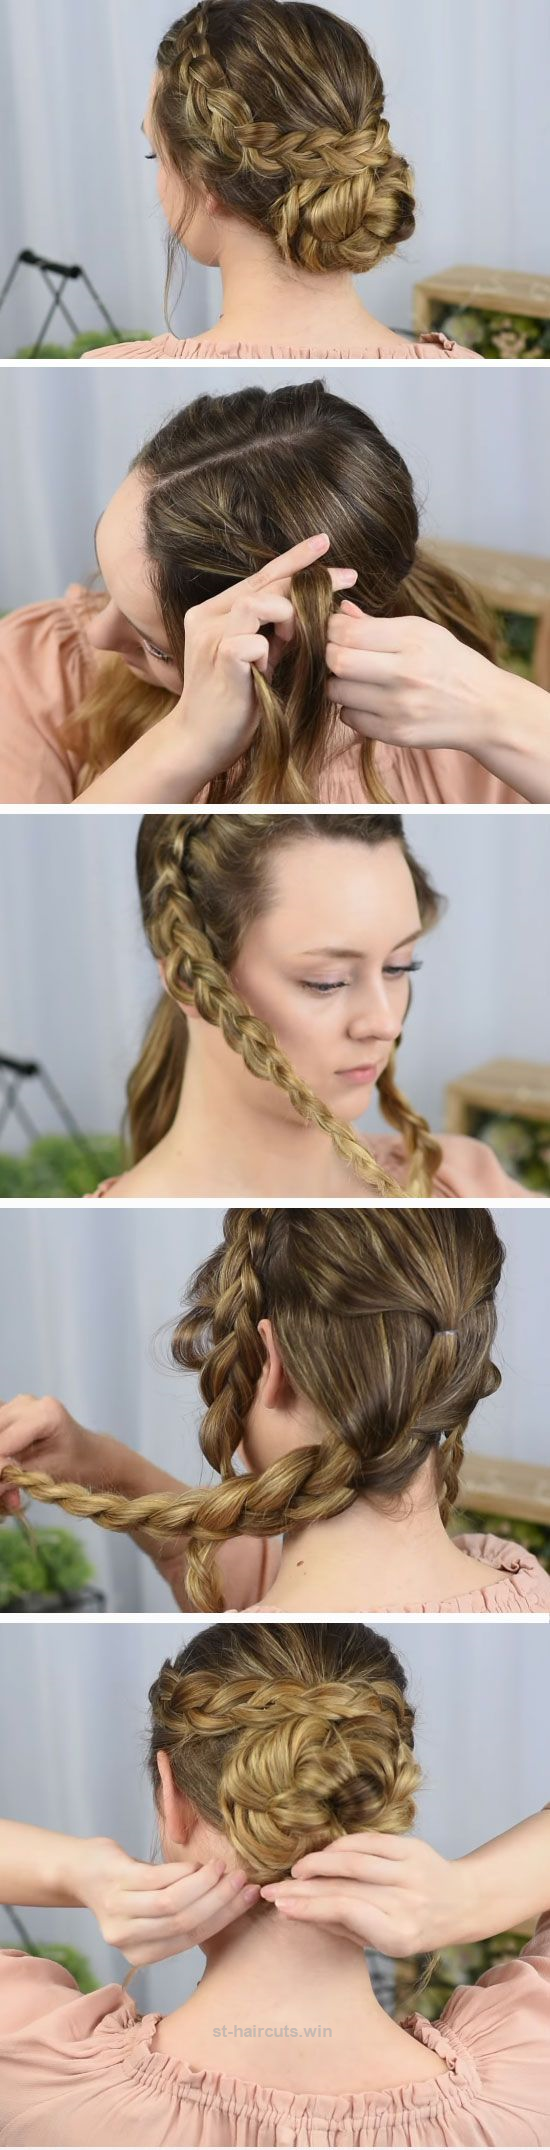 Dutch braided updo pinterest easy homecoming hairstyles